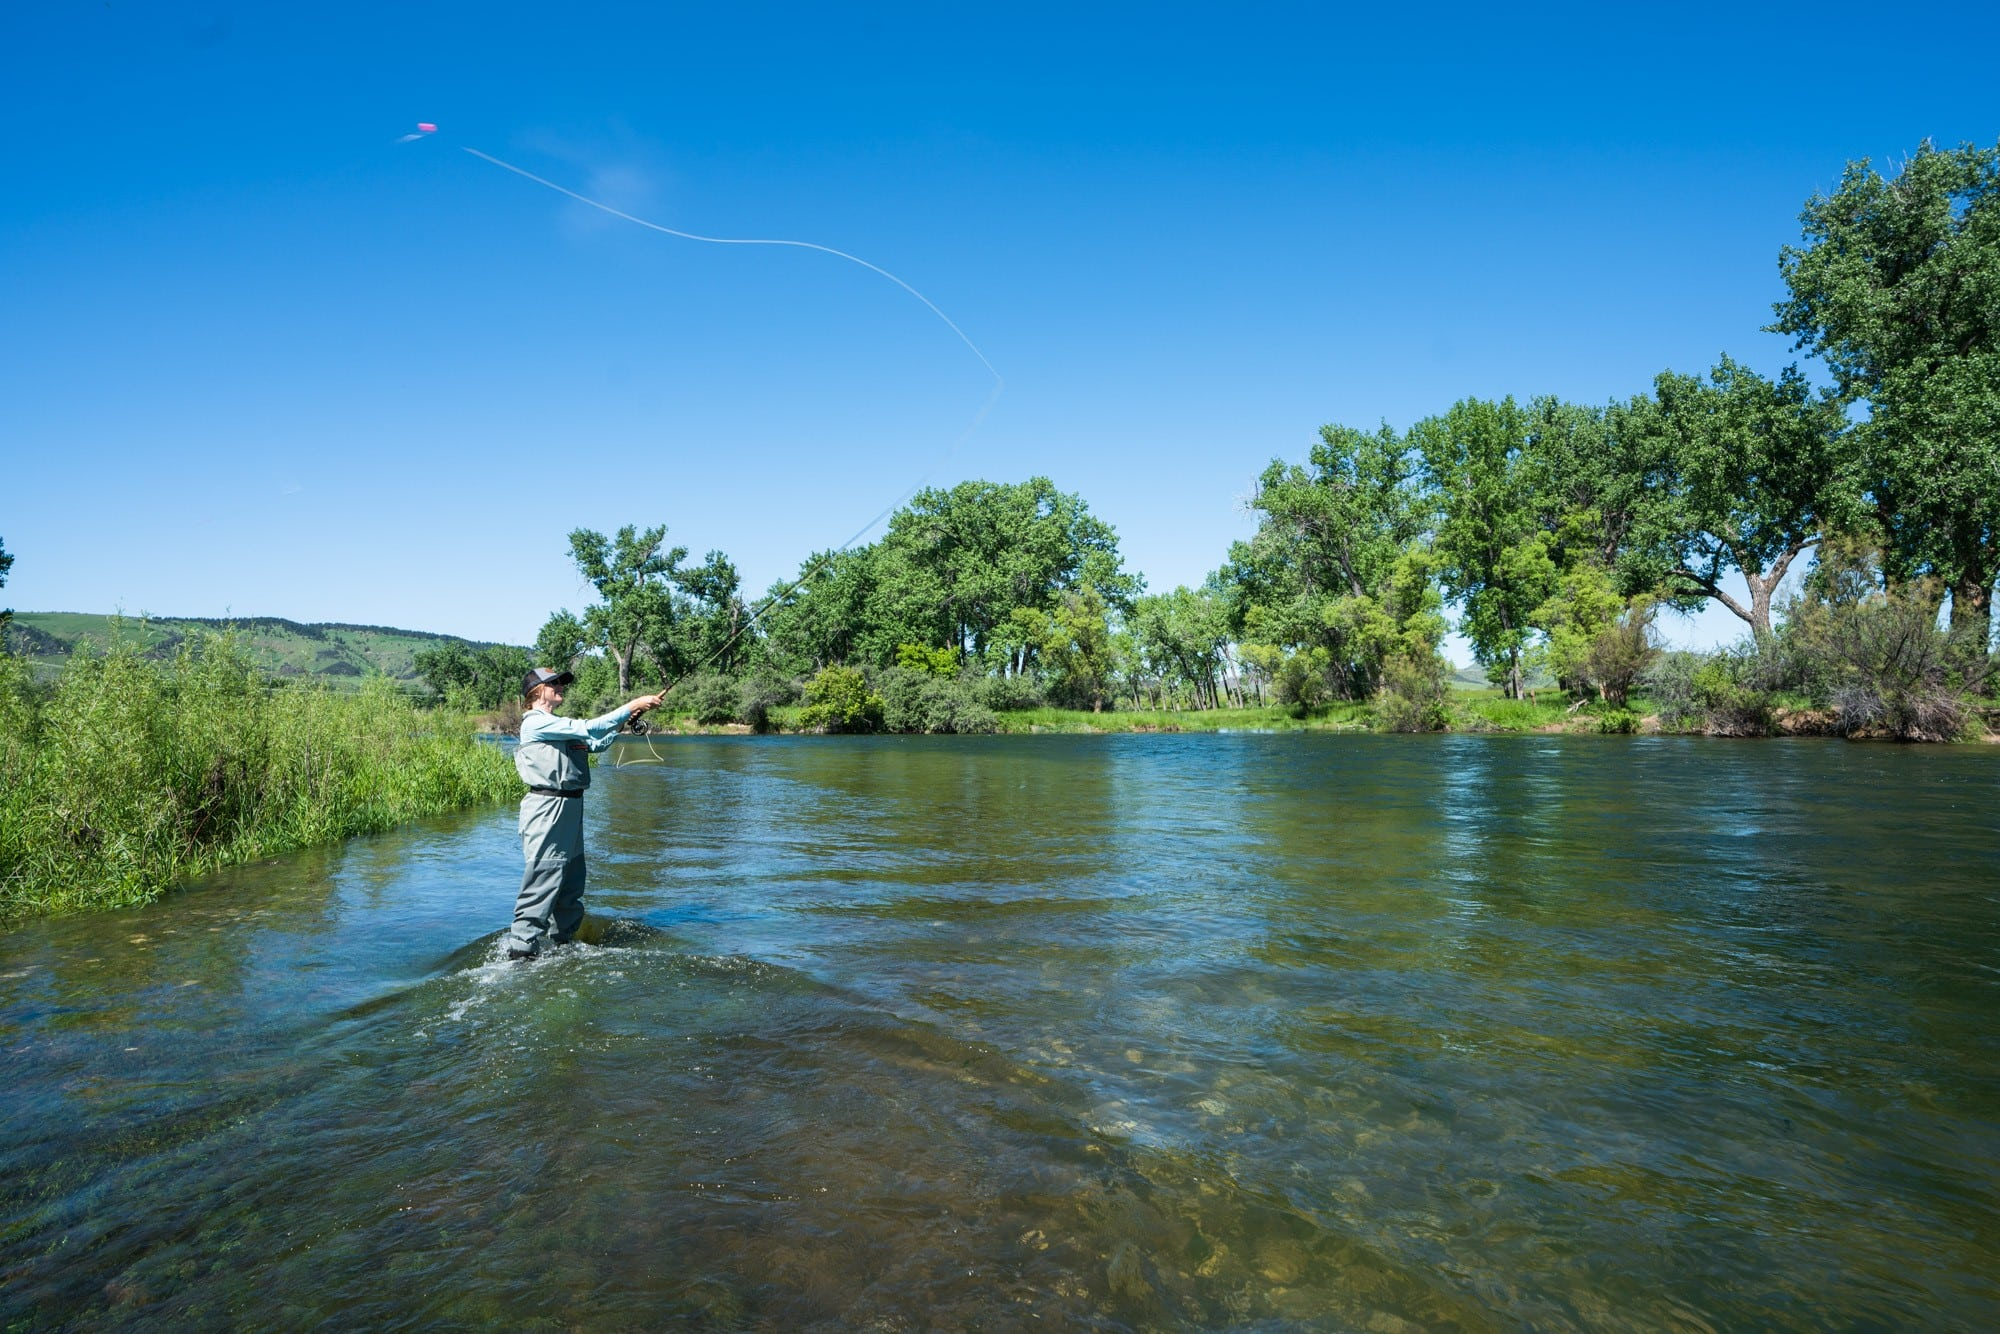 Bighorn River Fly Fishing // Explore Southeast Montana with this ultimate 7-day itinerary. Hike through the Badlands, fly fish outside of Billings, Montana, and more!